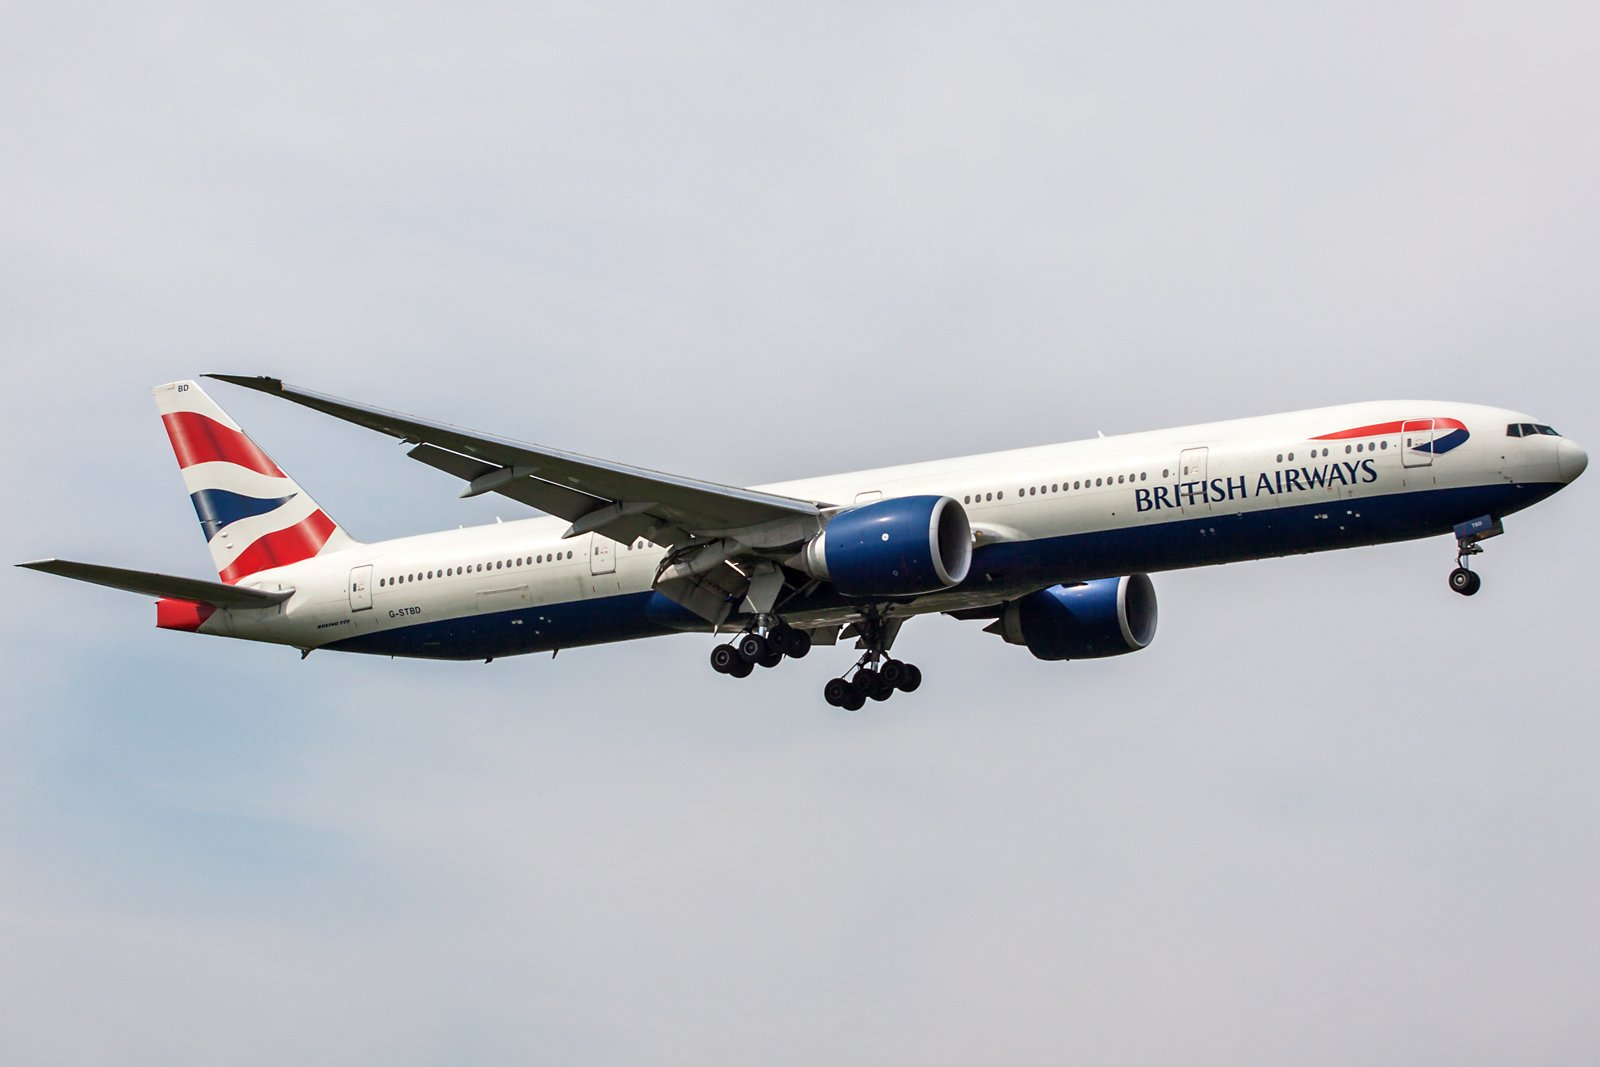 British Airways Boeing 777-36N(ER) G-STBD